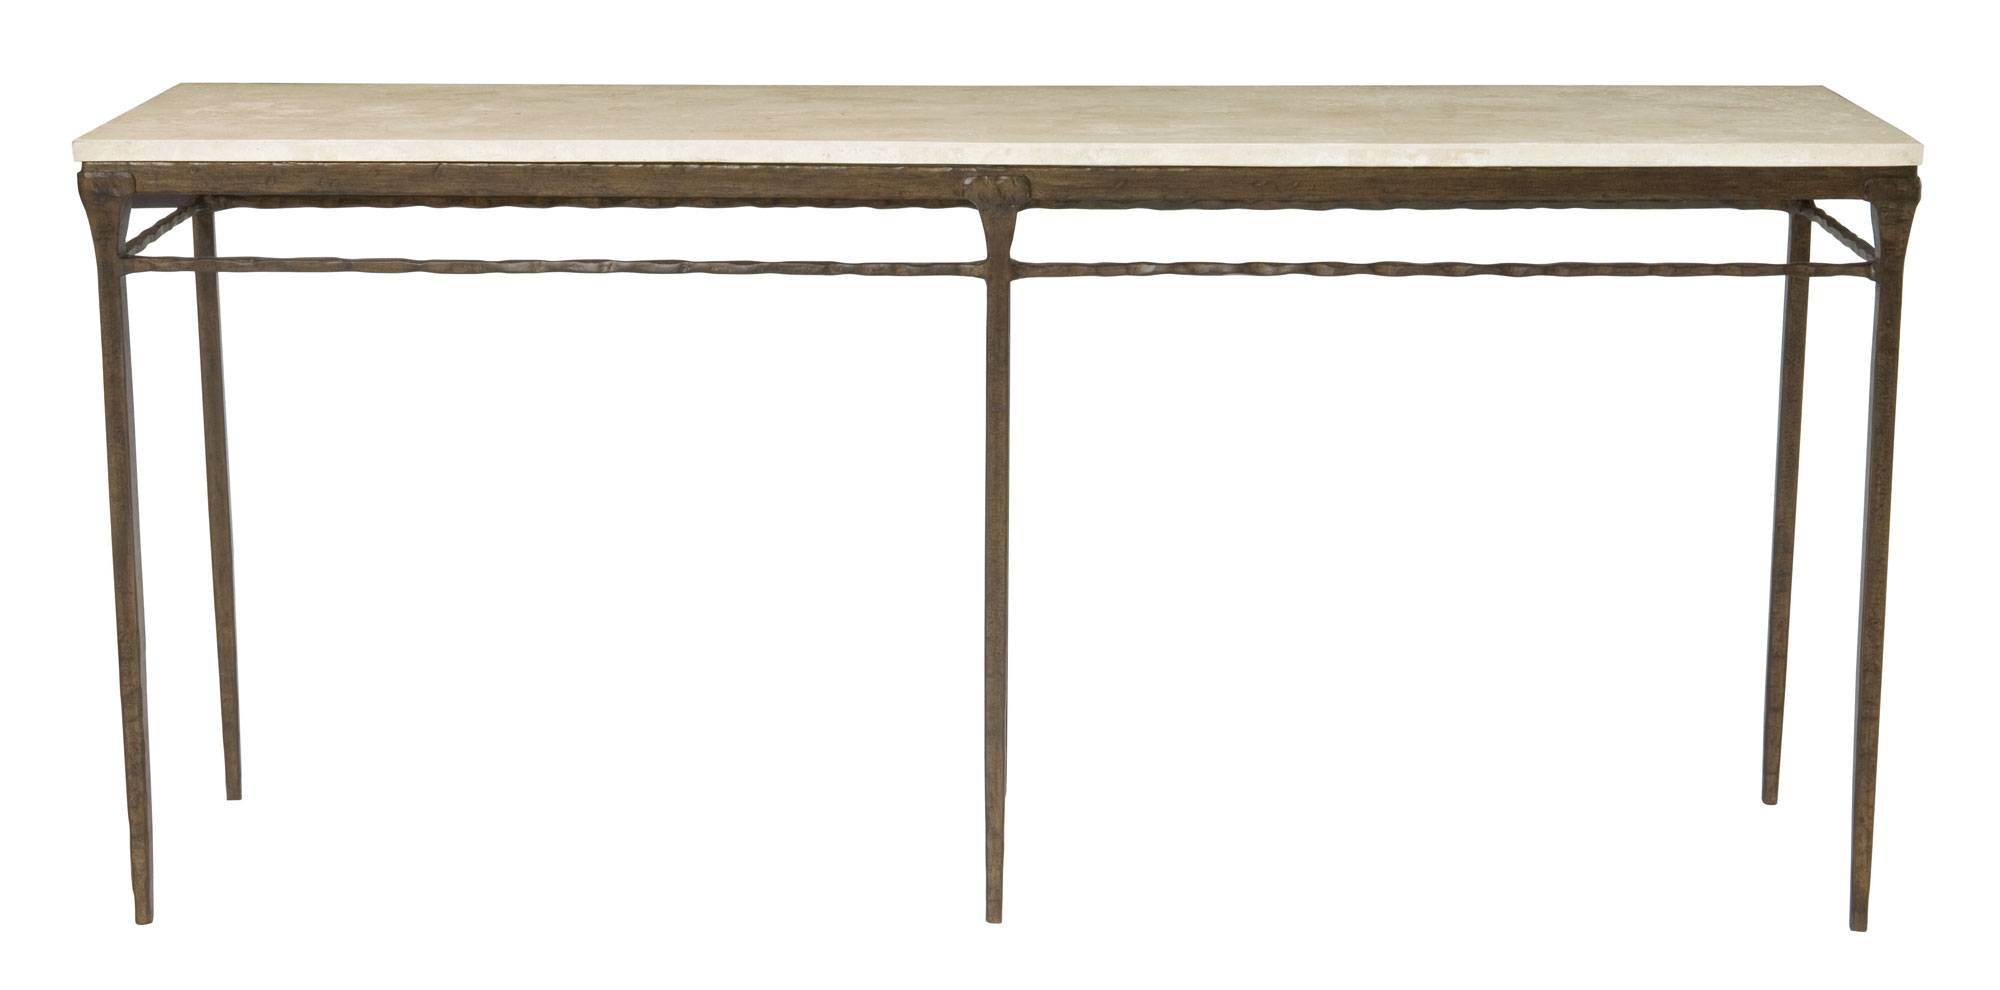 Console Table | Bernhardt pertaining to Bernhardt Console Tables (Image 7 of 15)